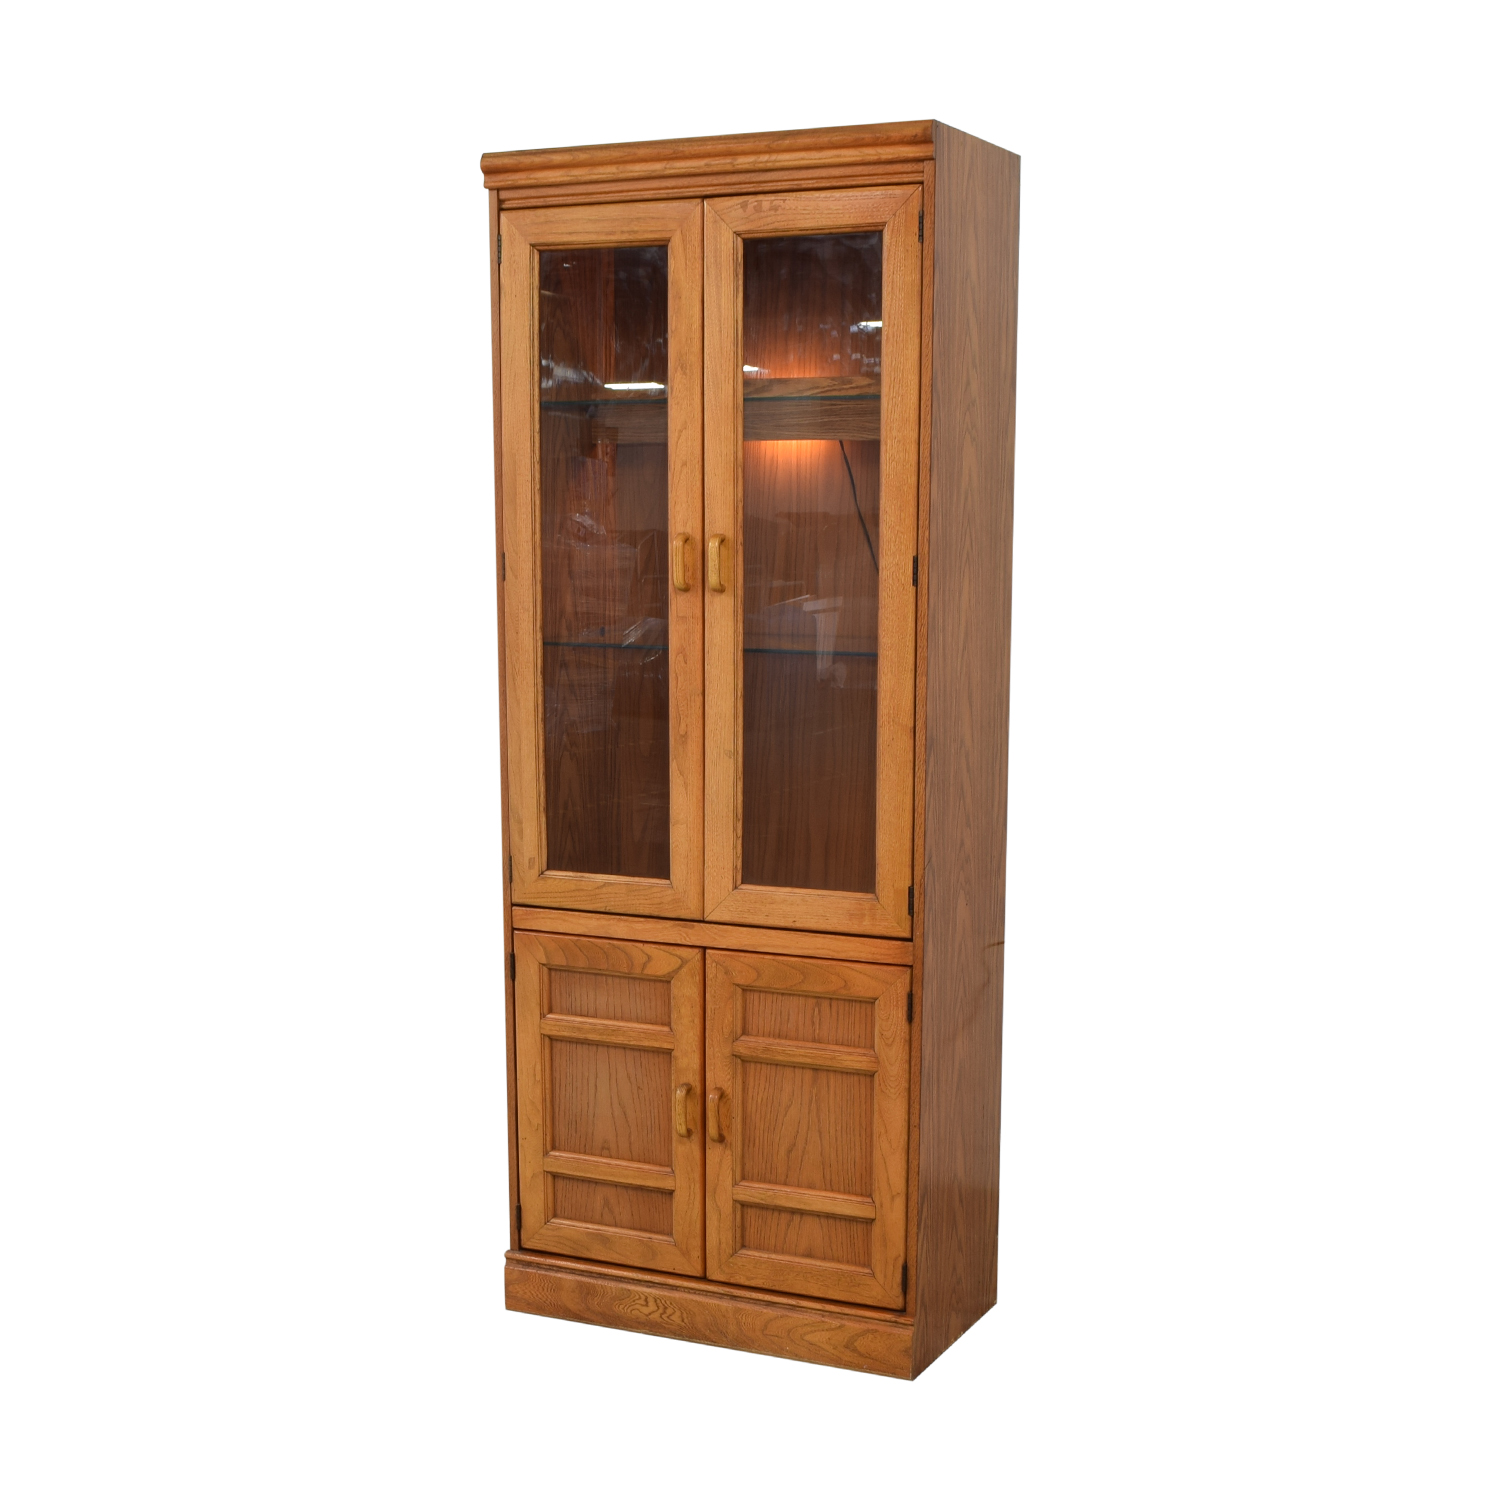 Strange 90 Off Macys Wood And Glass China Cabinet Storage Download Free Architecture Designs Intelgarnamadebymaigaardcom